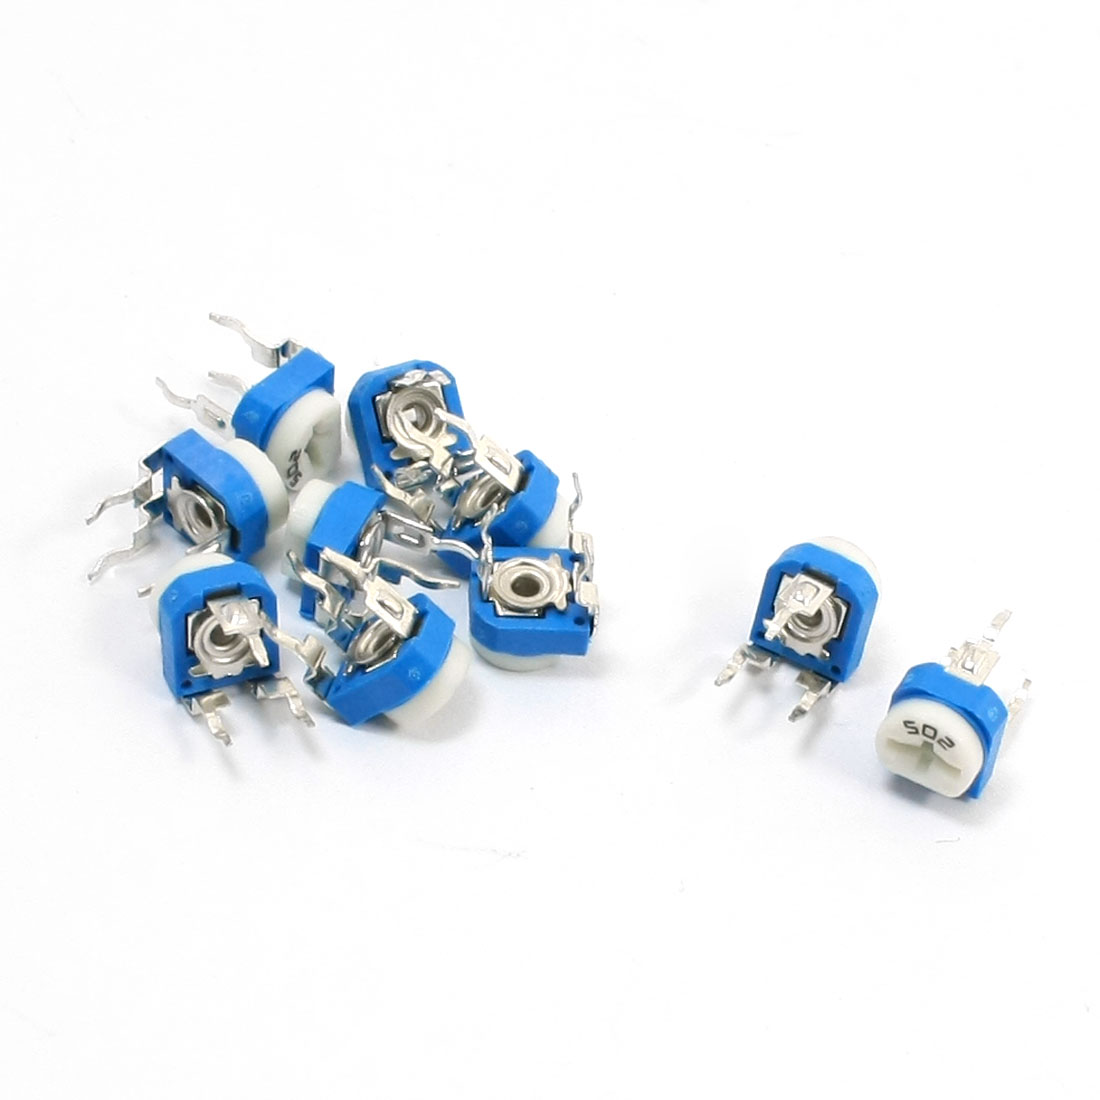 10Pcs 5K Ohm Single Turn Potentiometer Pot Rotary Variable Resistor